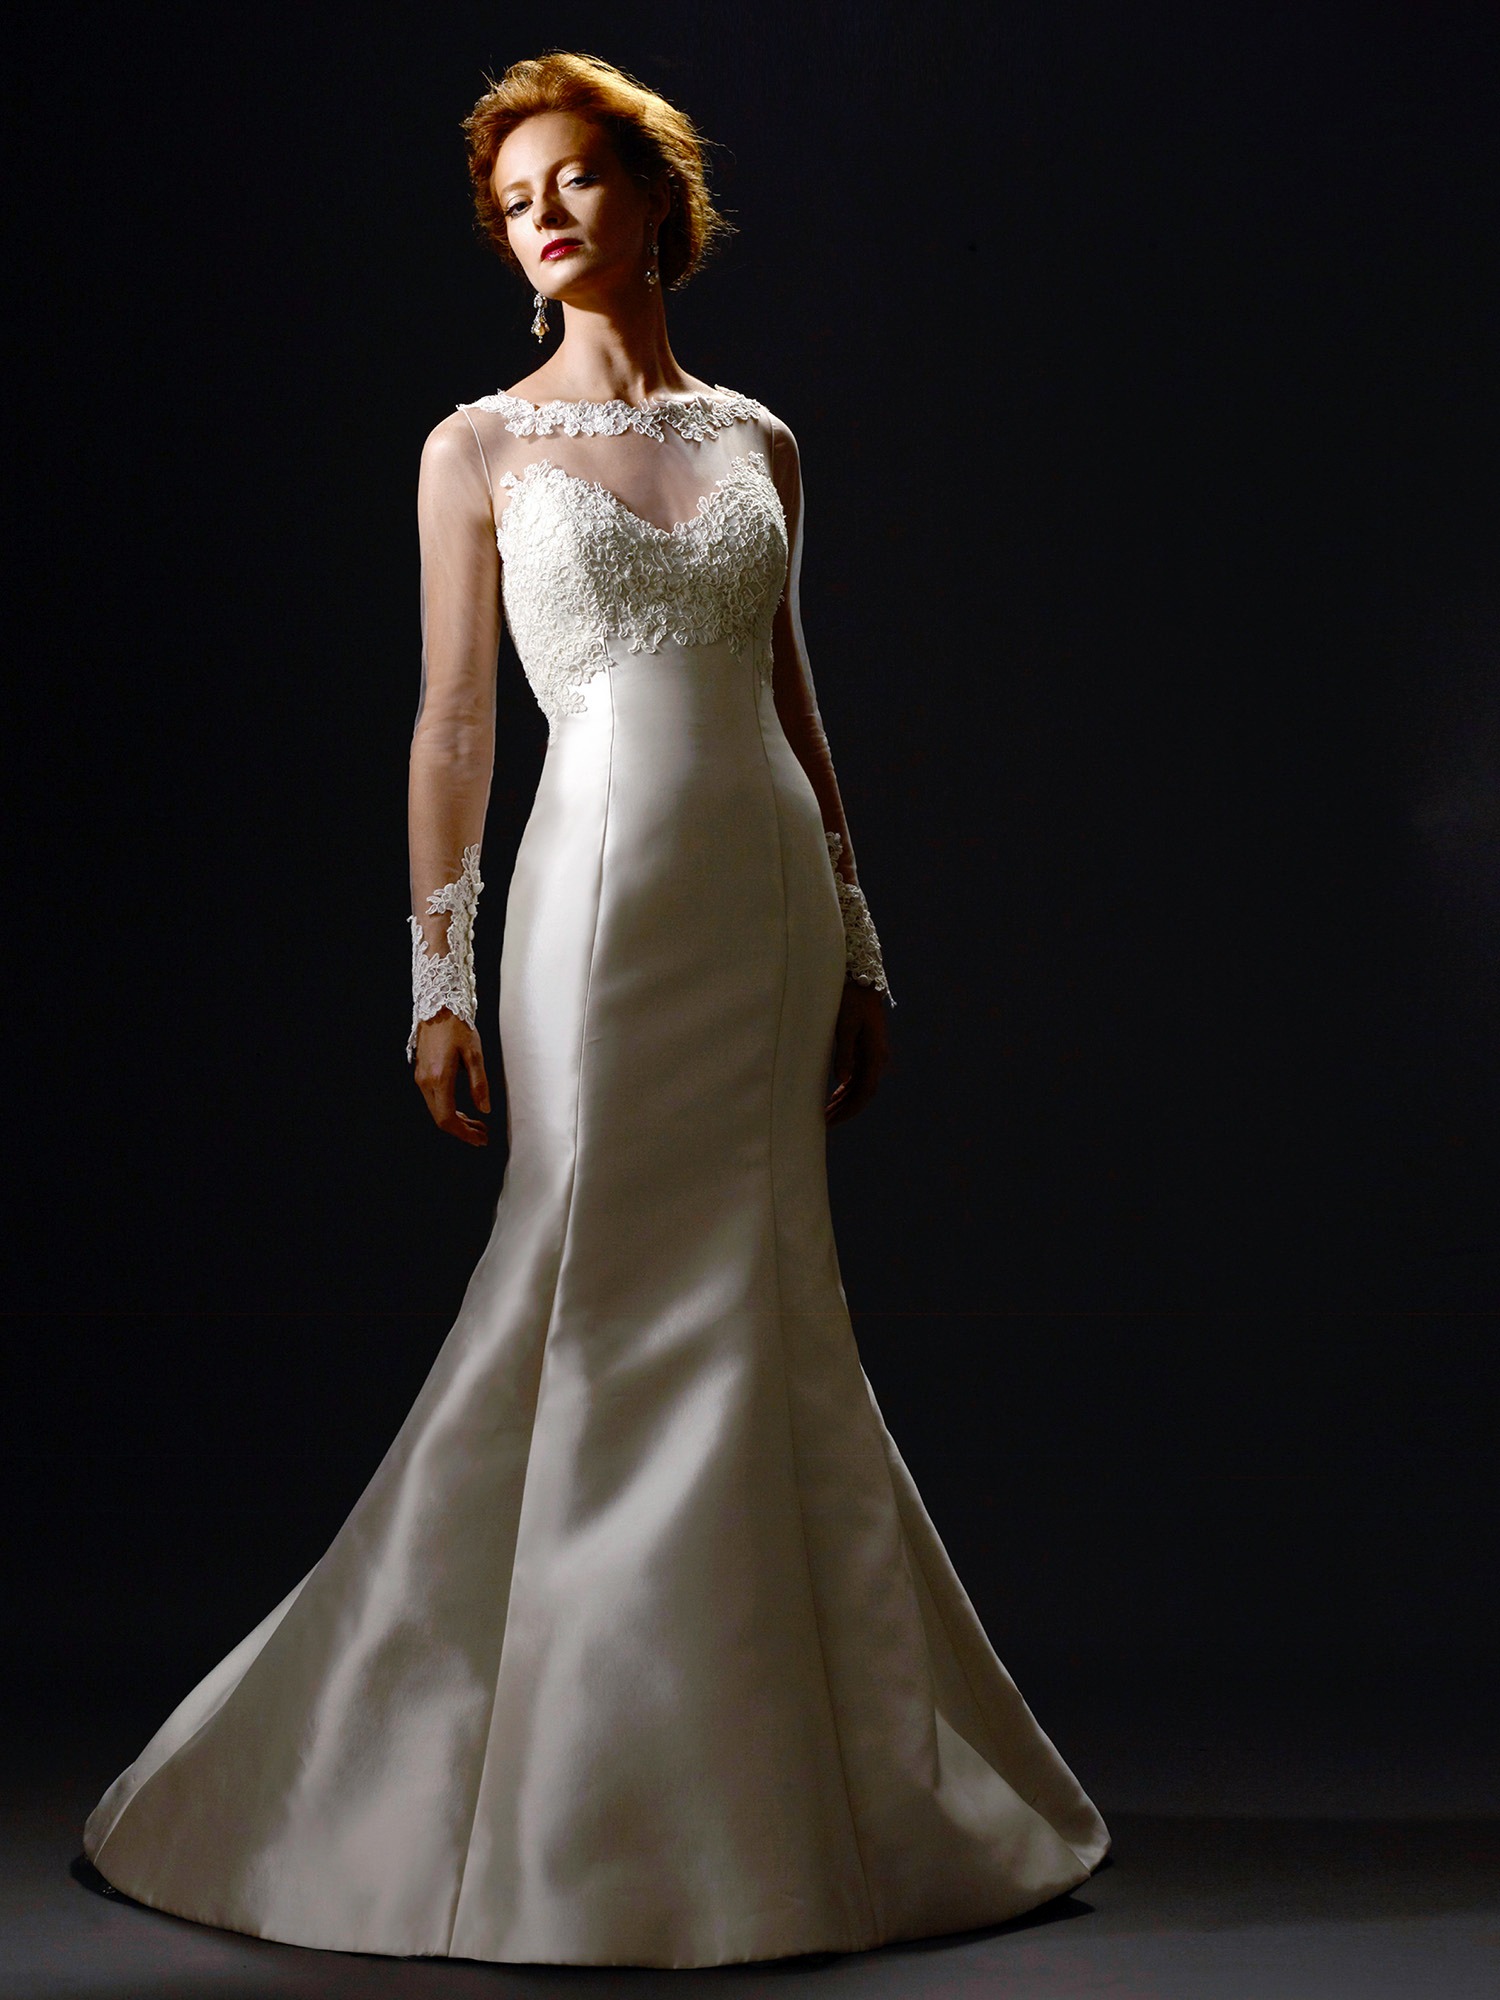 """""""Delphine"""" mermaid wedding dress with high illusion neckline, lace appliqués, and flared skirt"""